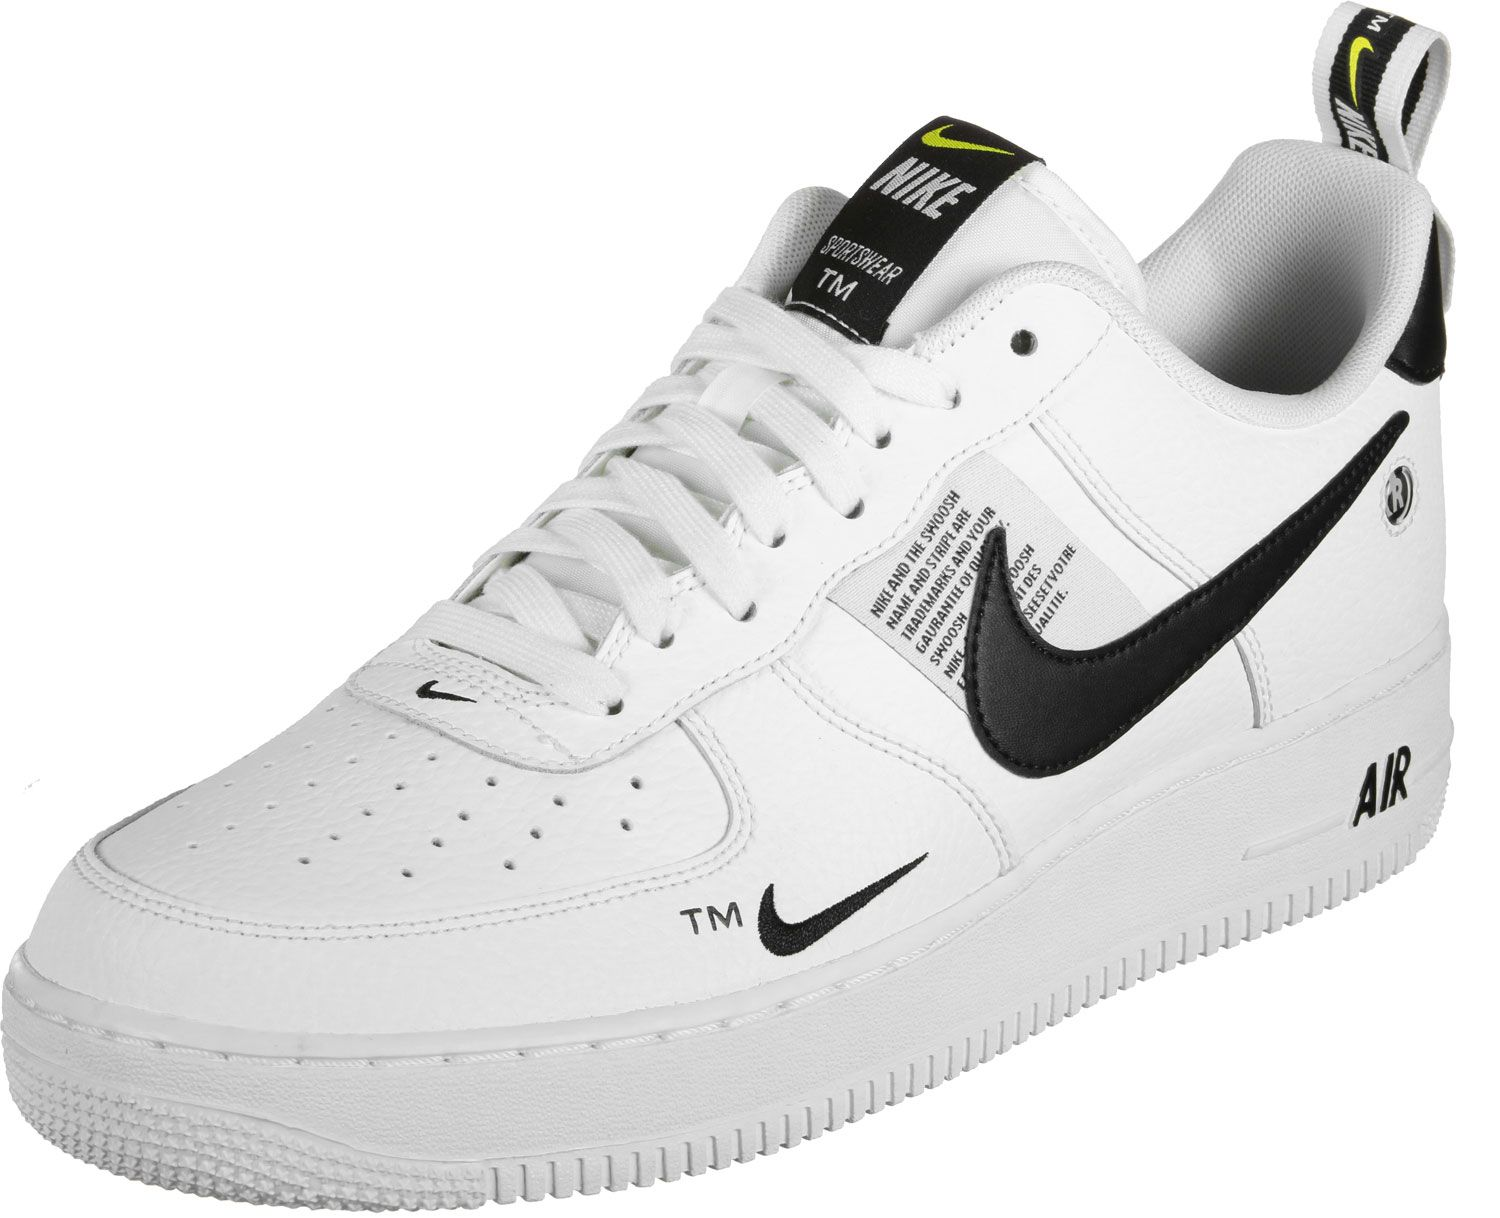 Nike Air Force 1 07 LV8 Utility chaussures blanc force lv8 ...